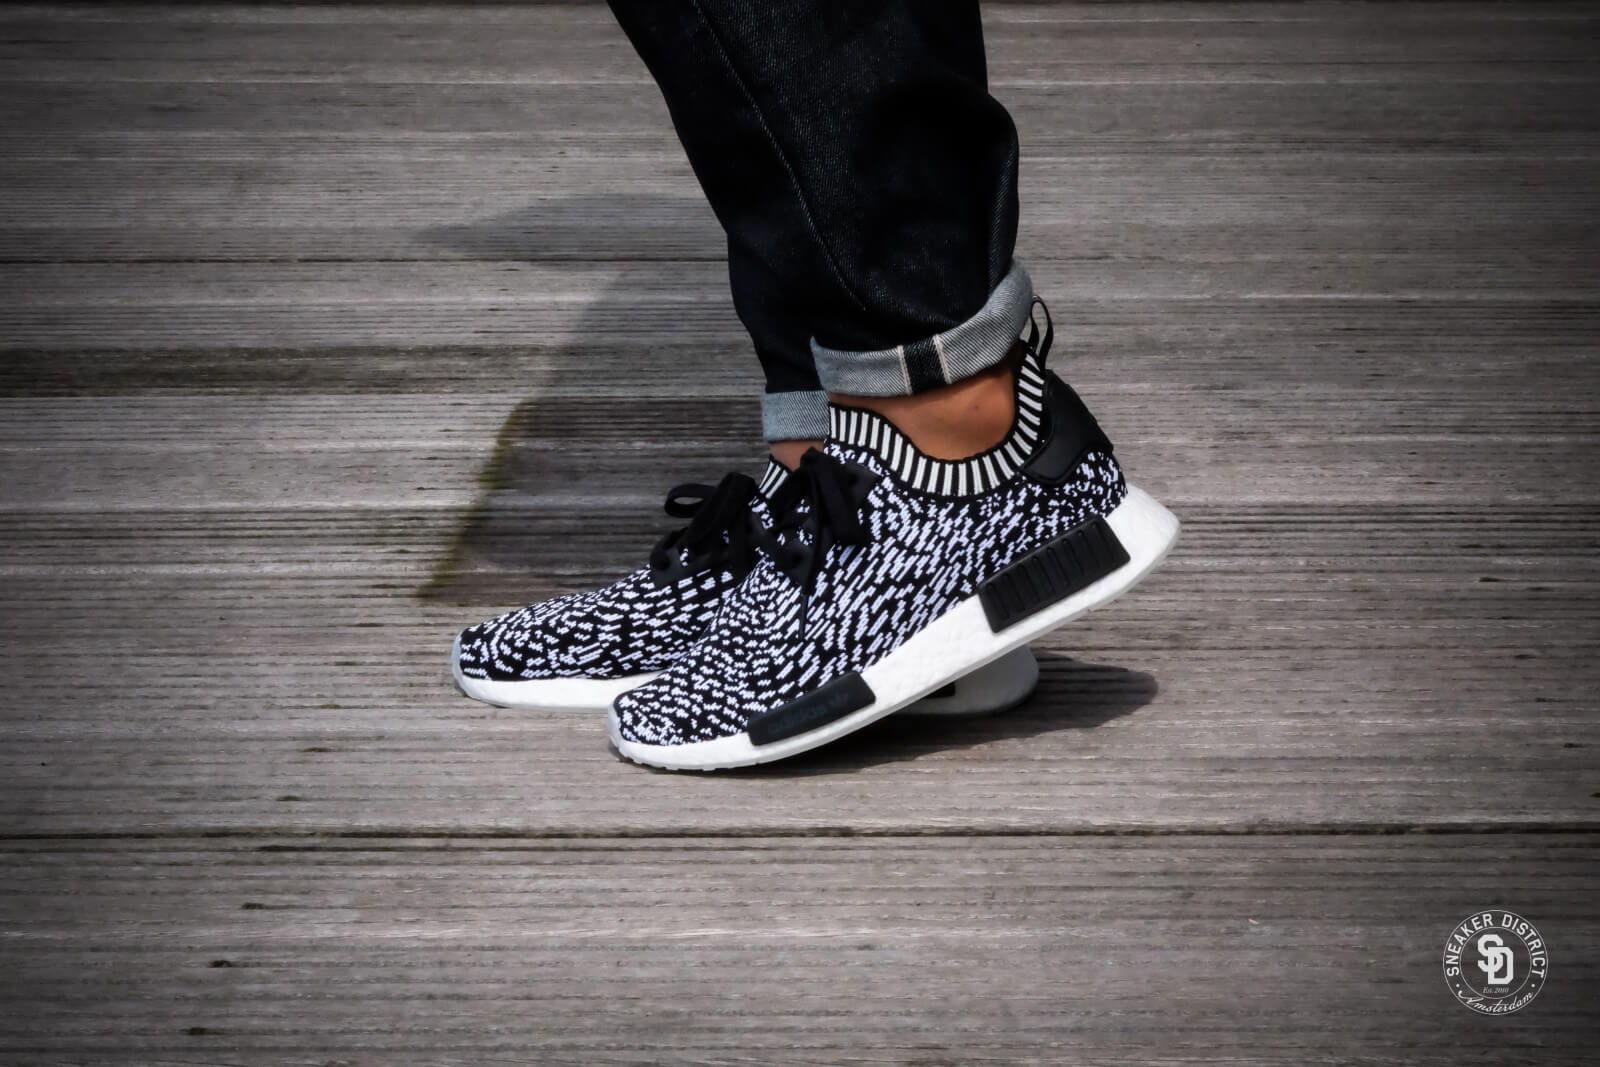 ce54ea444b313 Adidas NMD R1 PK Winter Wool for SALE! ( 960322) from Levi Klekt